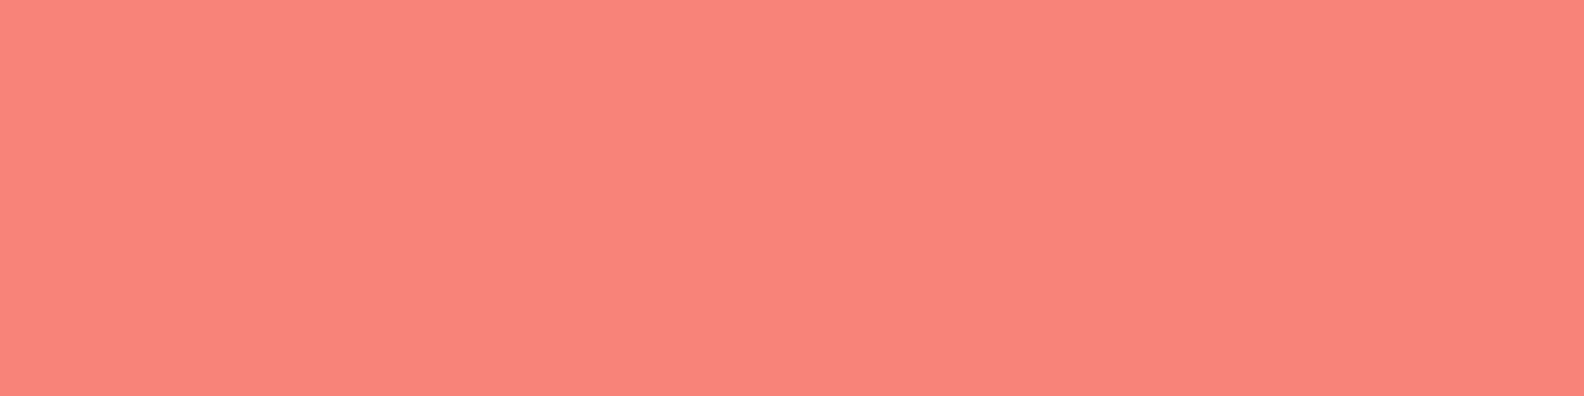 1584x396 Tea Rose Orange Solid Color Background